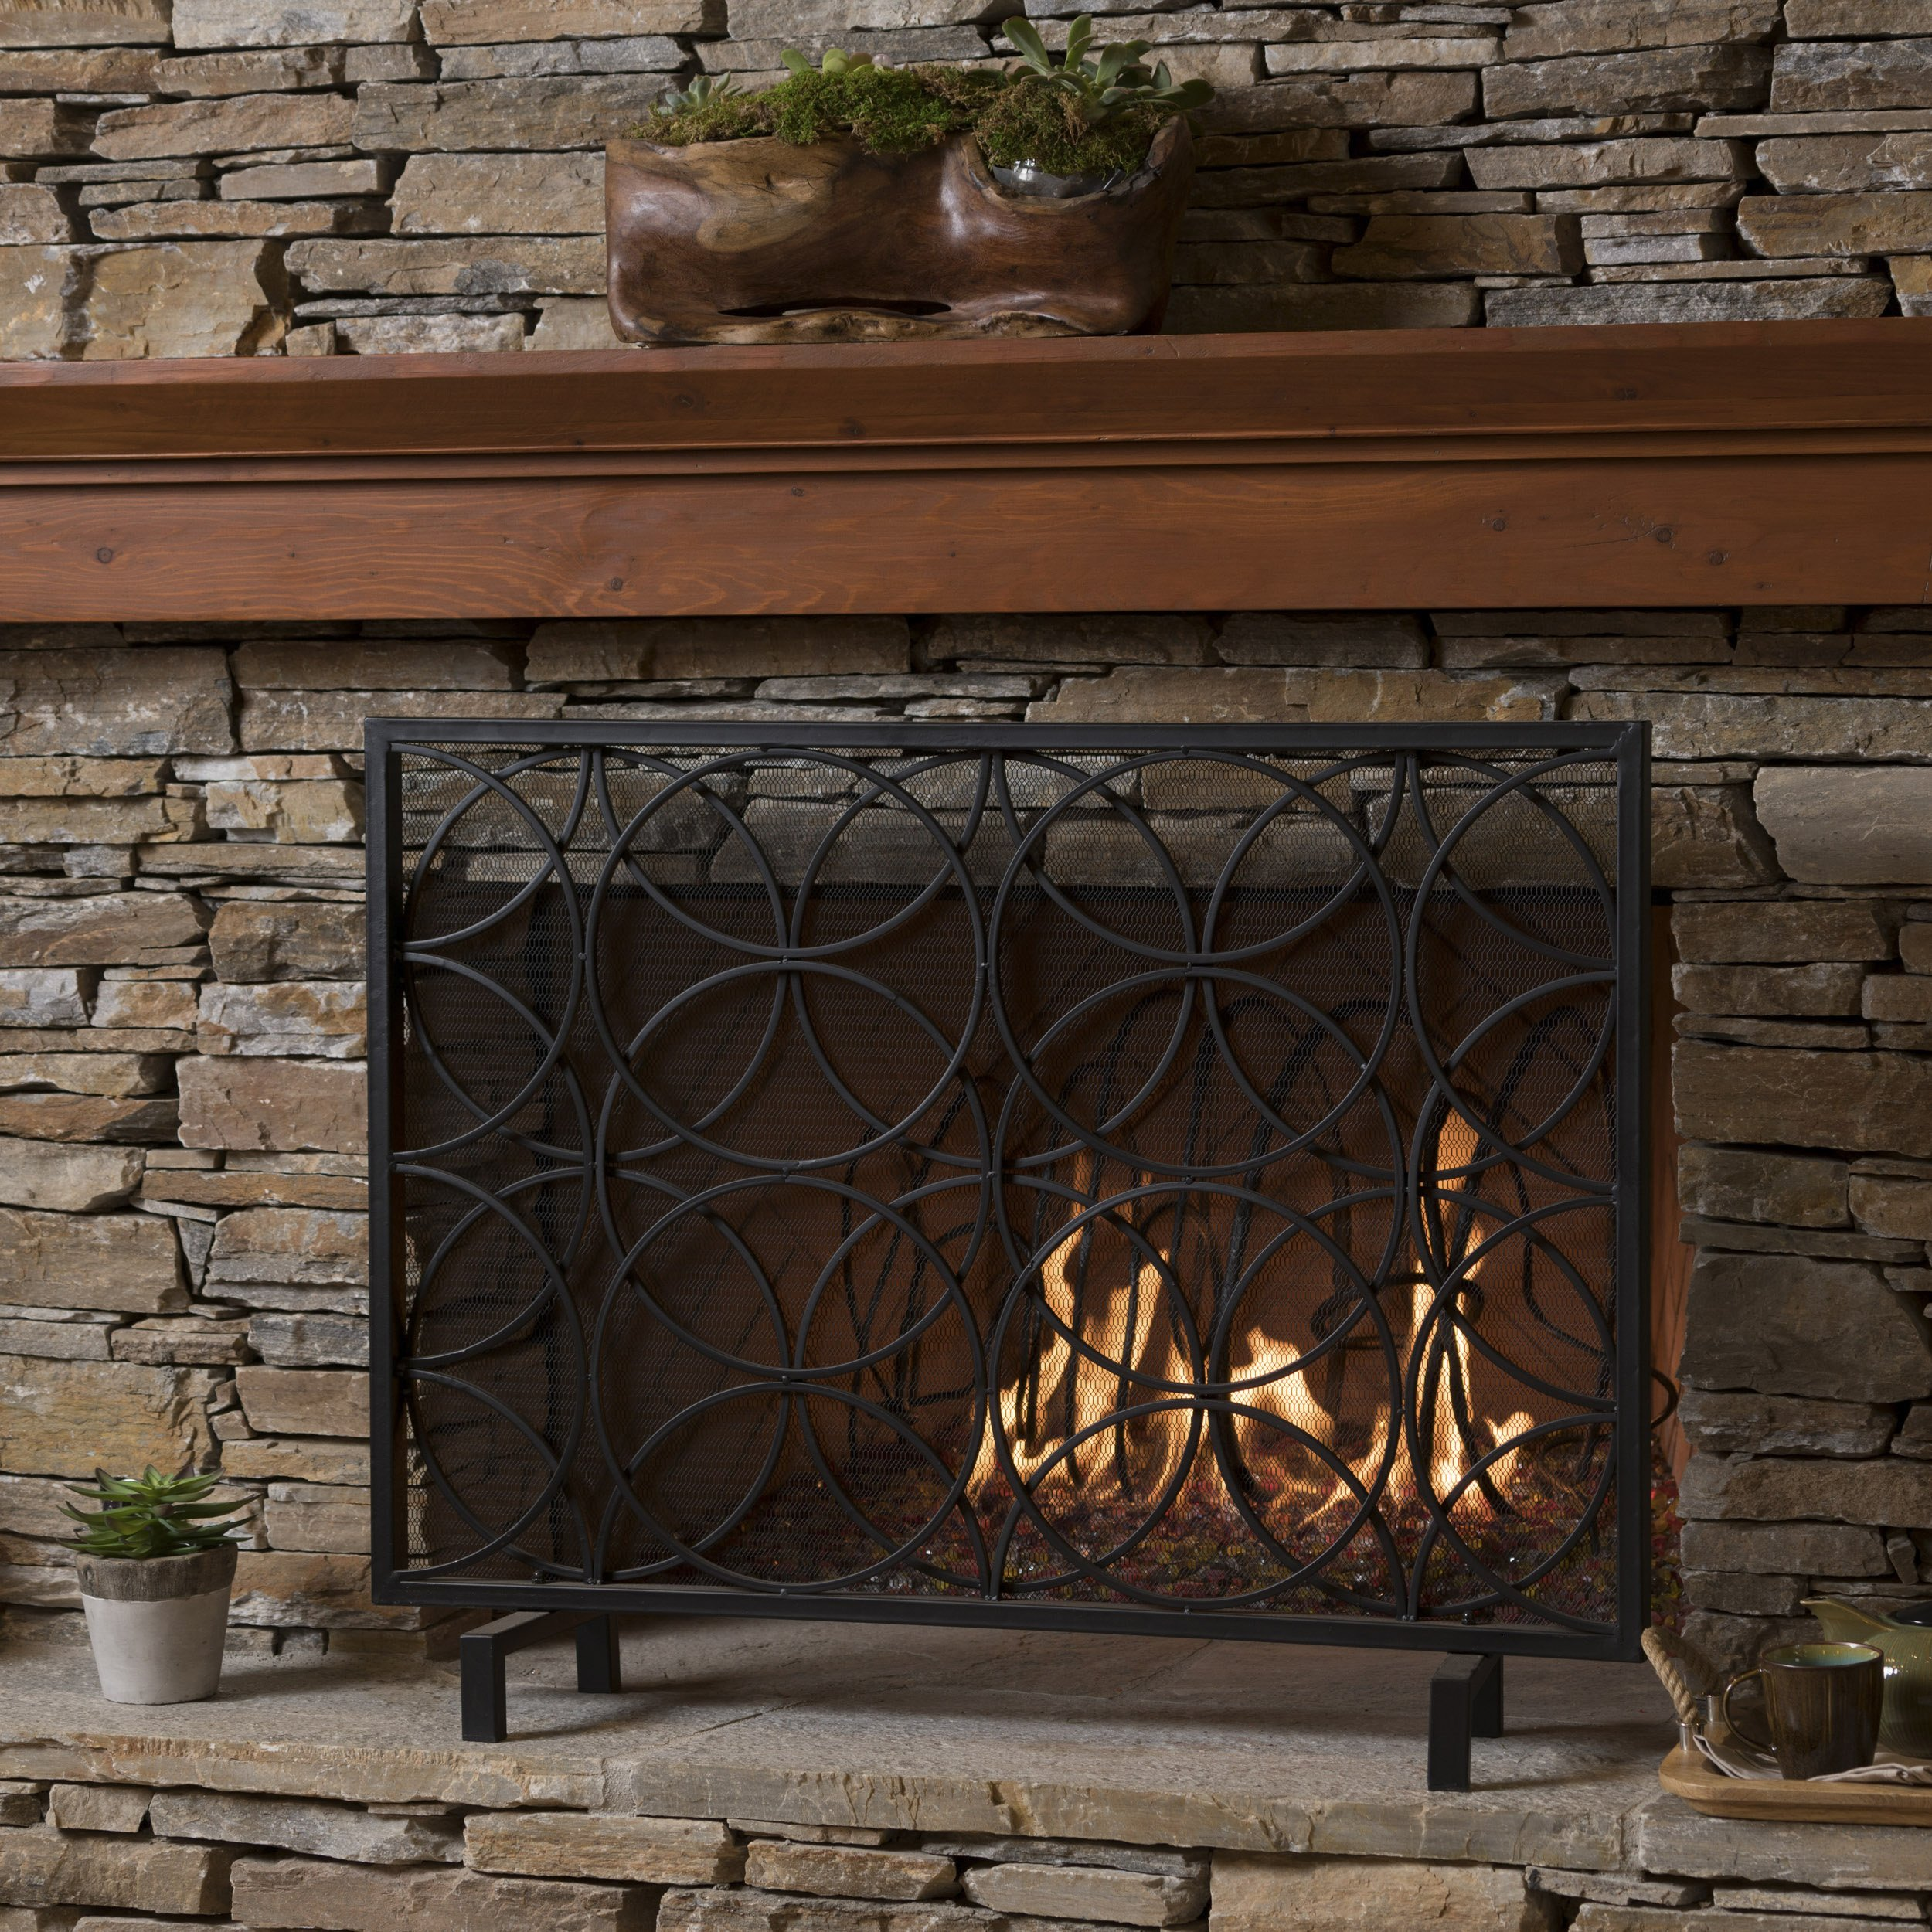 Christopher Knight Home Veritas Single Panel Black Iron Fireplace Screen by Christopher Knight Home